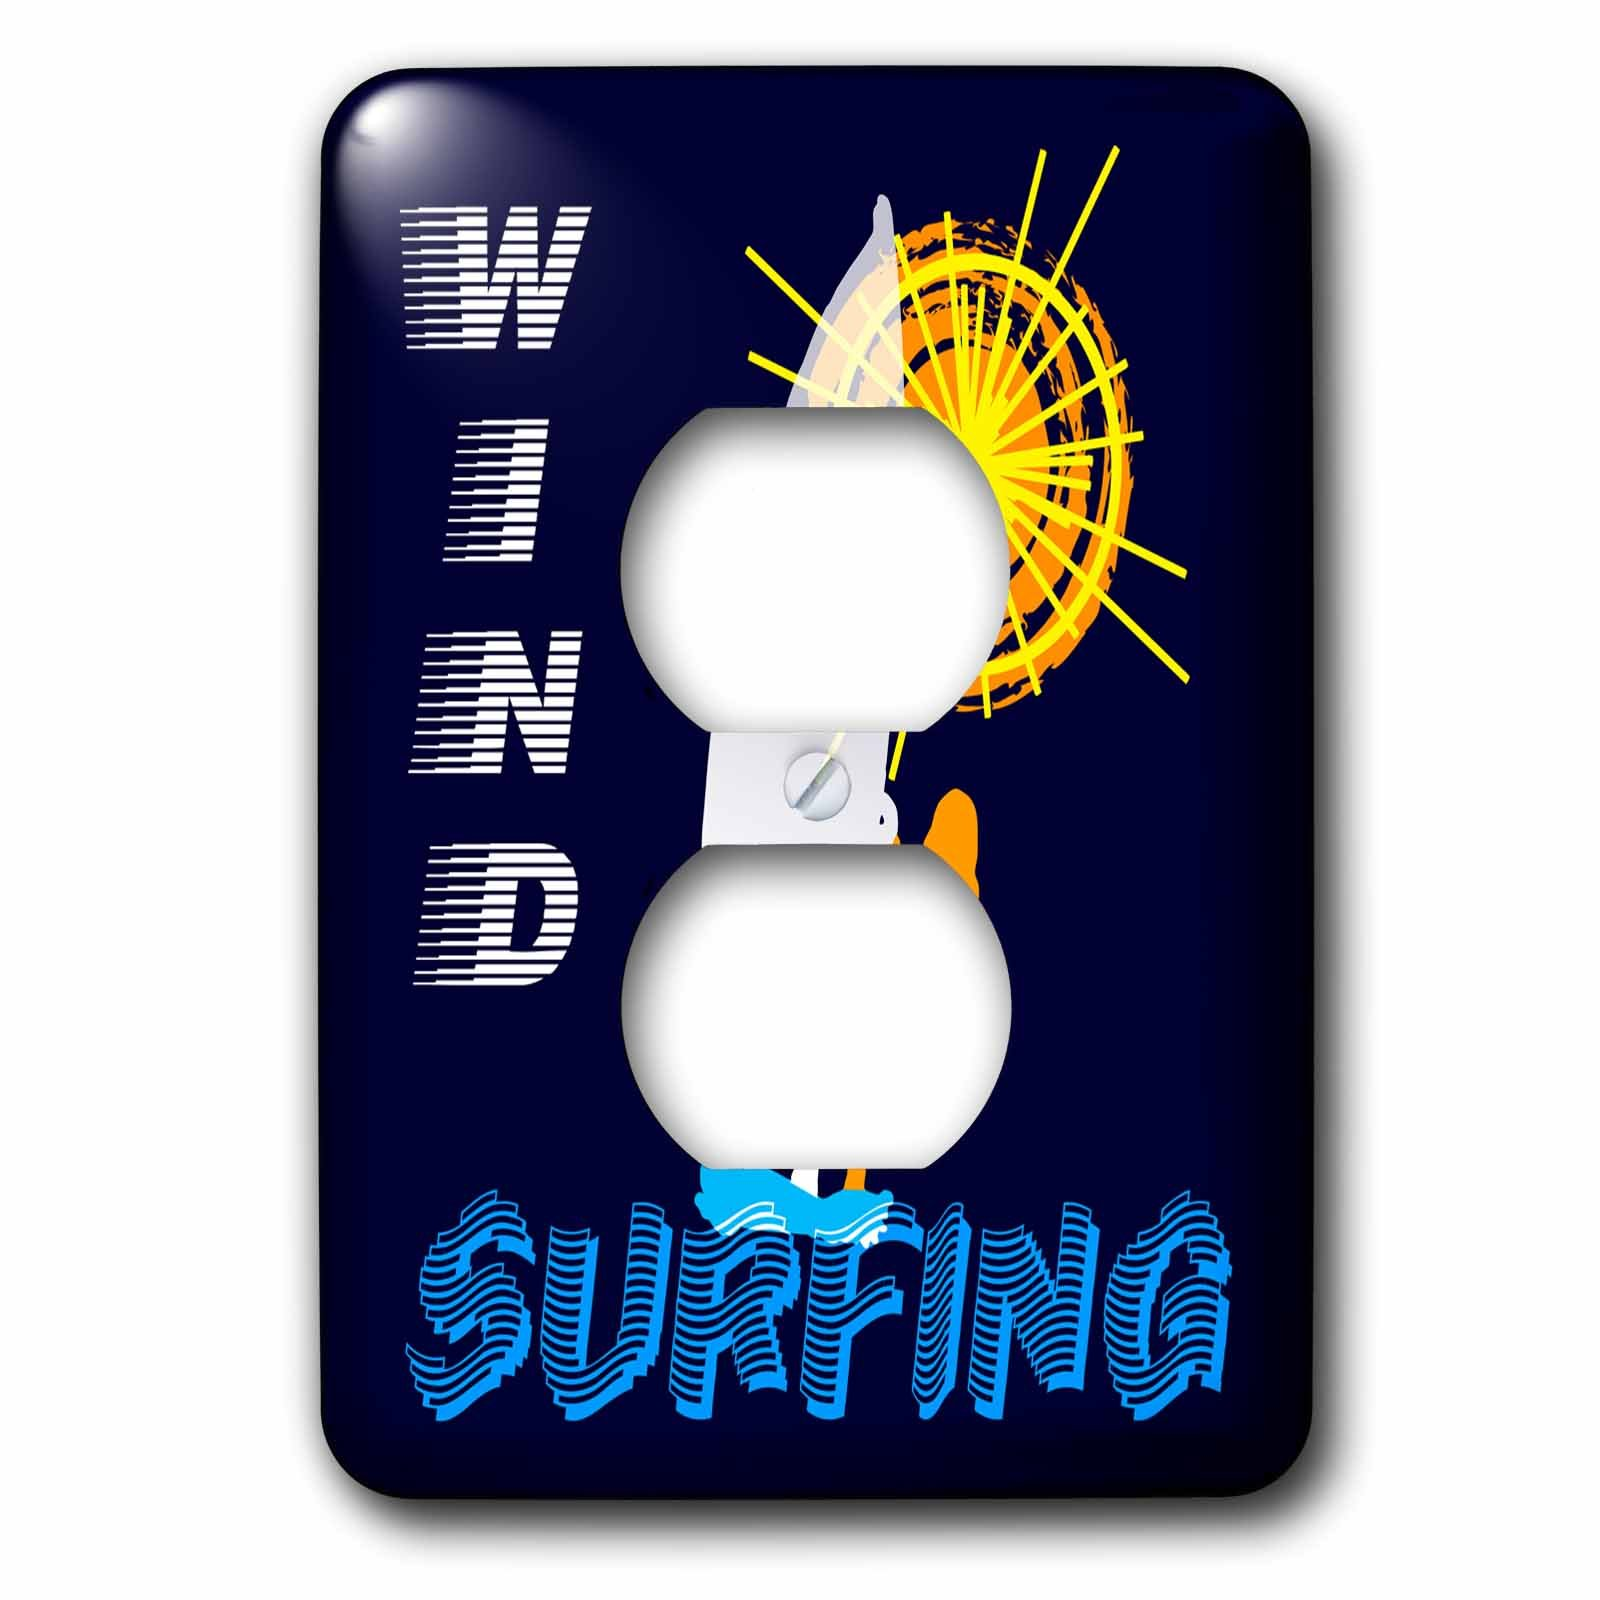 3dRose Alexis Design - Beach, Sea, Surf - Woman wind surfer, text WIND SURFING, orange sun. Good vibes - Light Switch Covers - 2 plug outlet cover (lsp_271765_6)